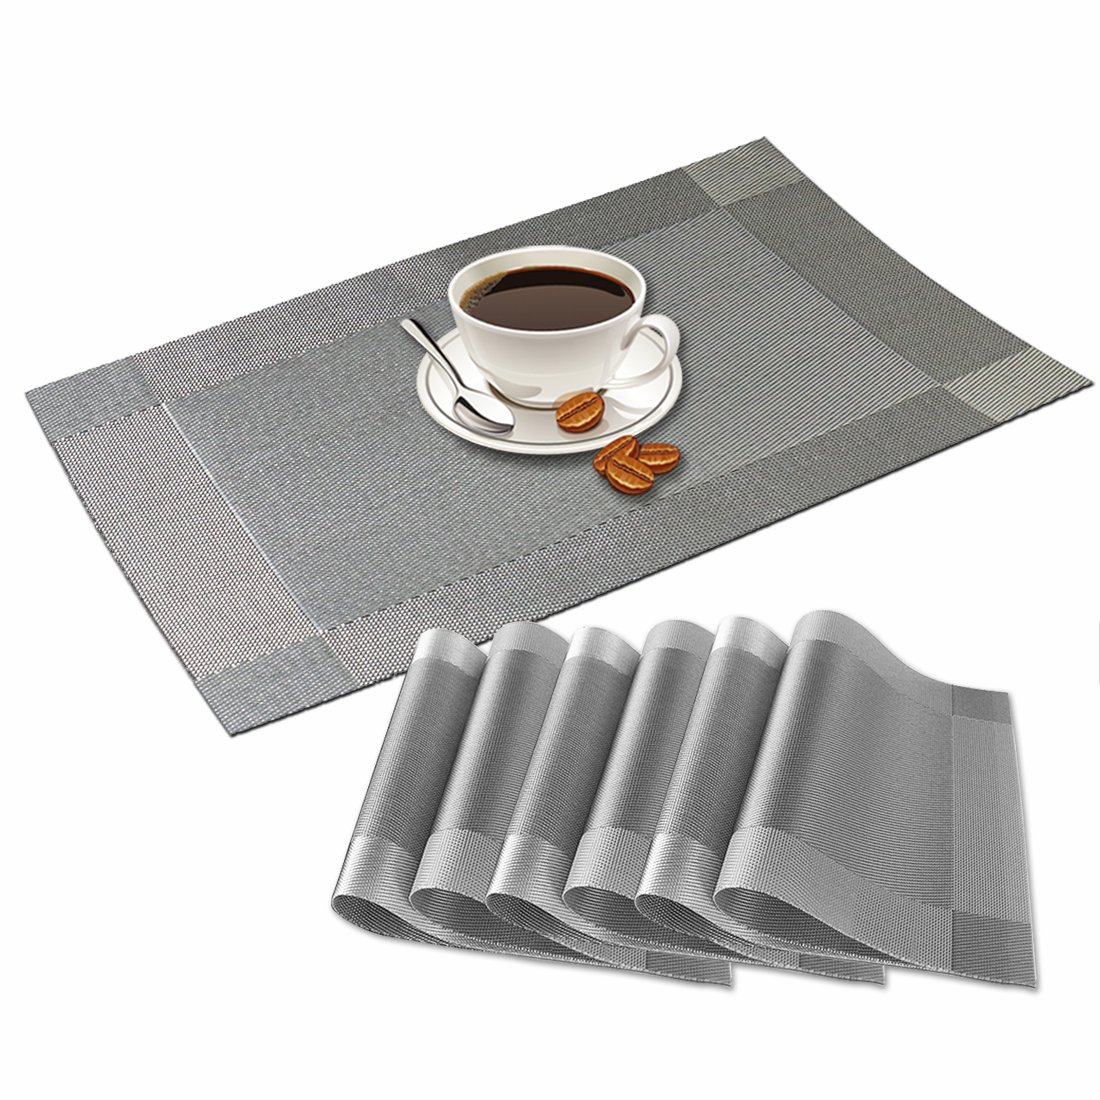 Idepet Heat Insulation Place mats Set of 6,Durable Non-Slip Table Place Mats for Kitchen Table,Stain Resistant Dinner Mats for Glass Table,Wood Table,Dining Table (Silver)